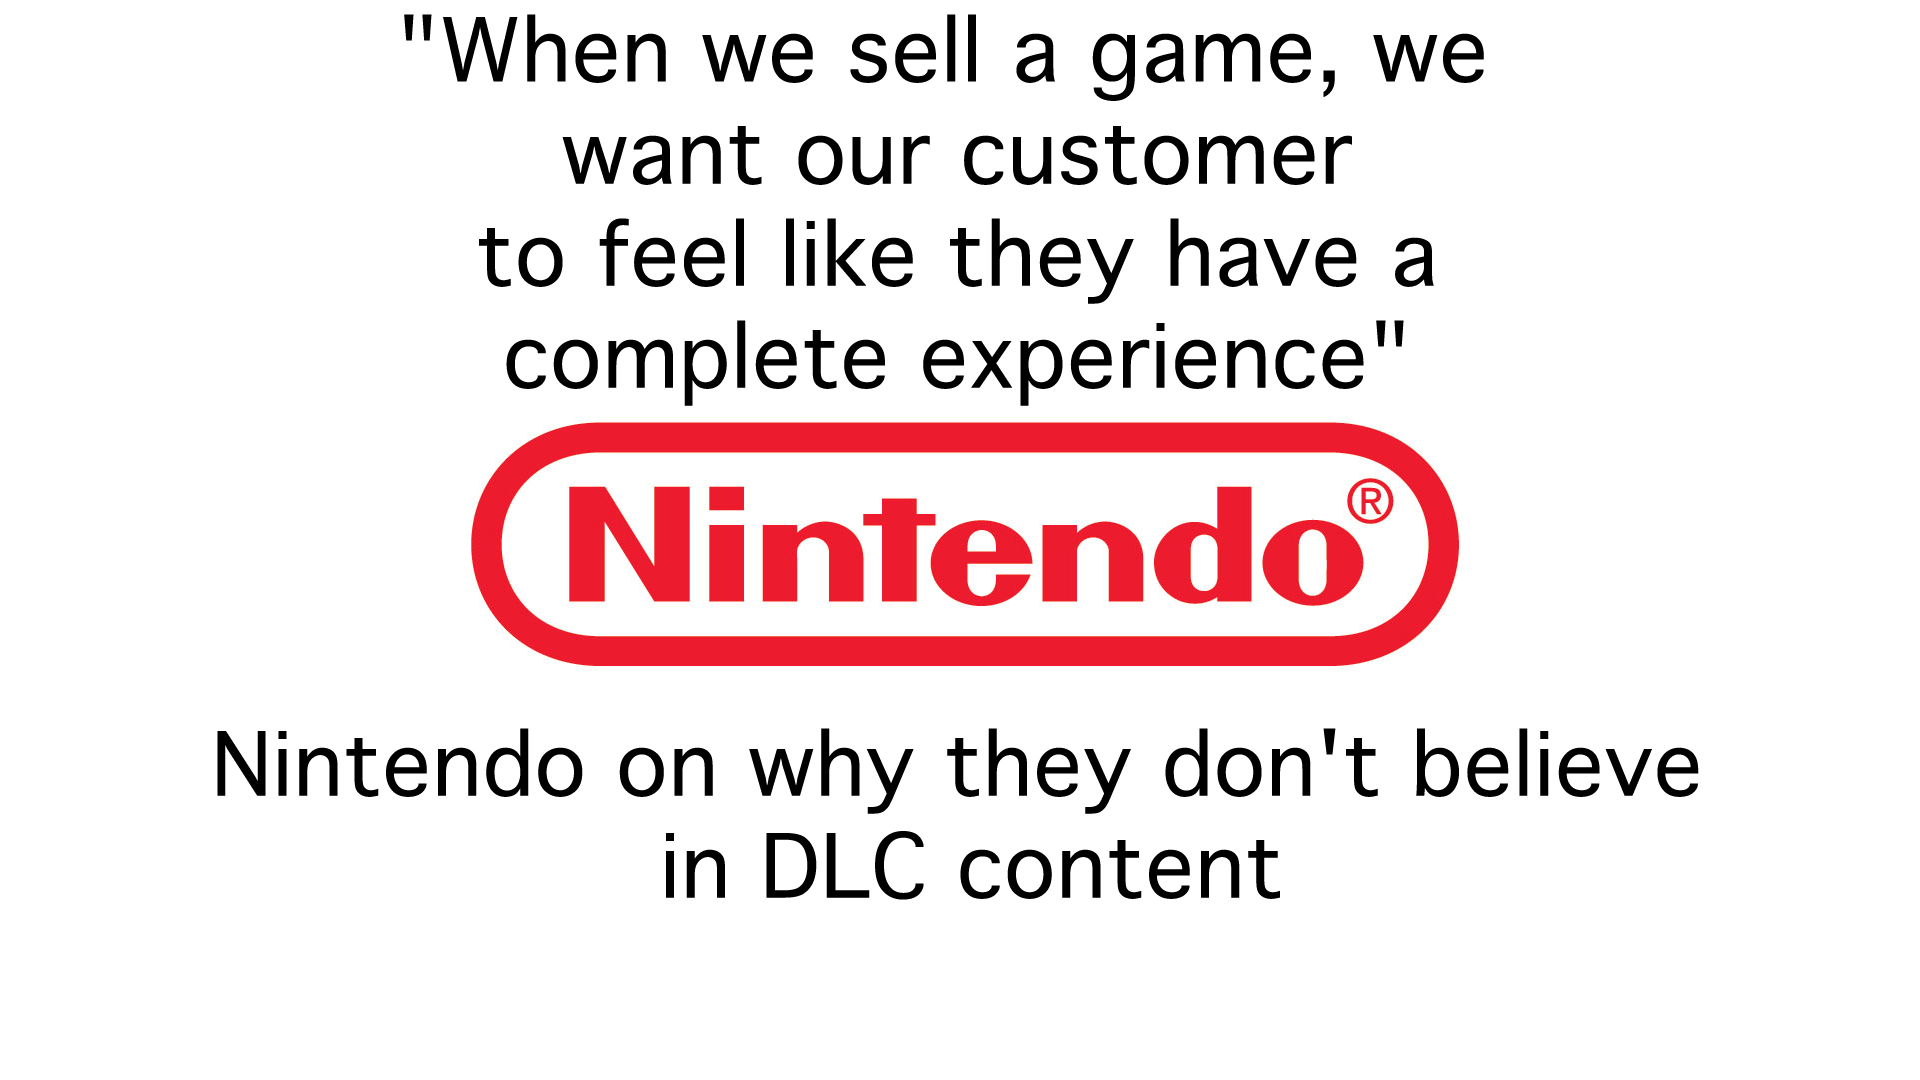 Nintendo on why they don't believe in DLC content